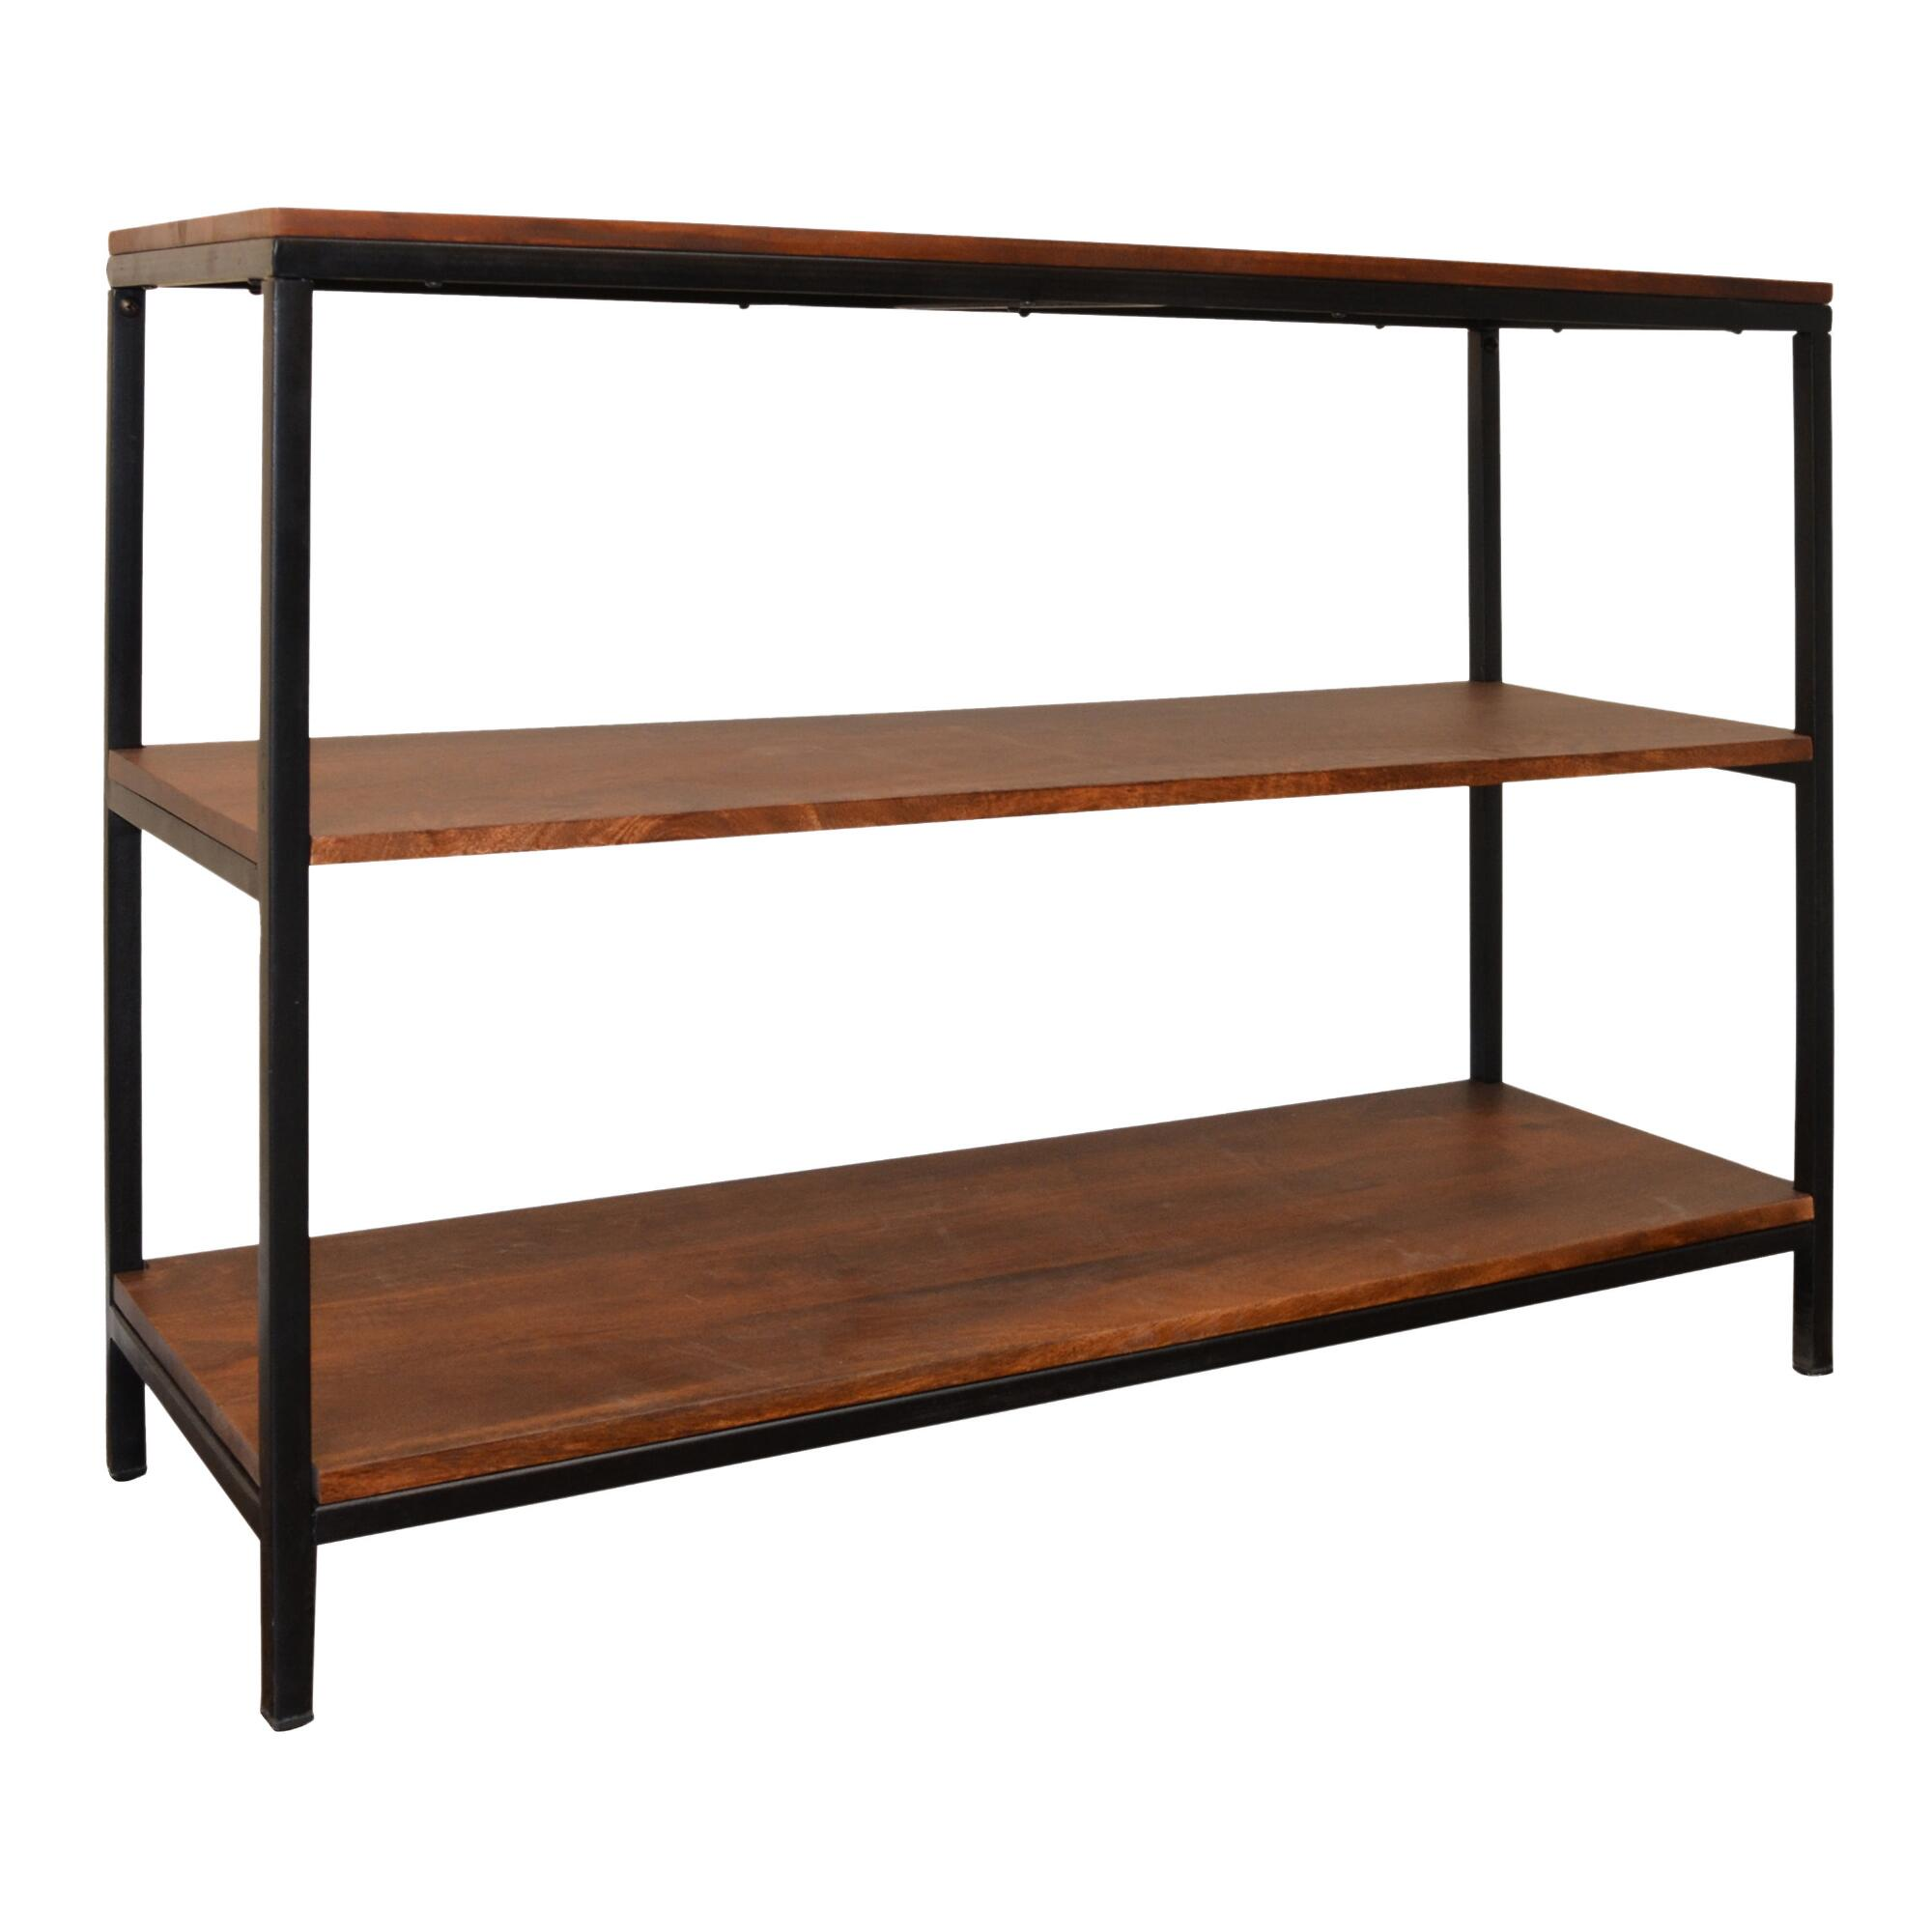 bookshelf and willard metal do tier world tiered product square xxx wood market